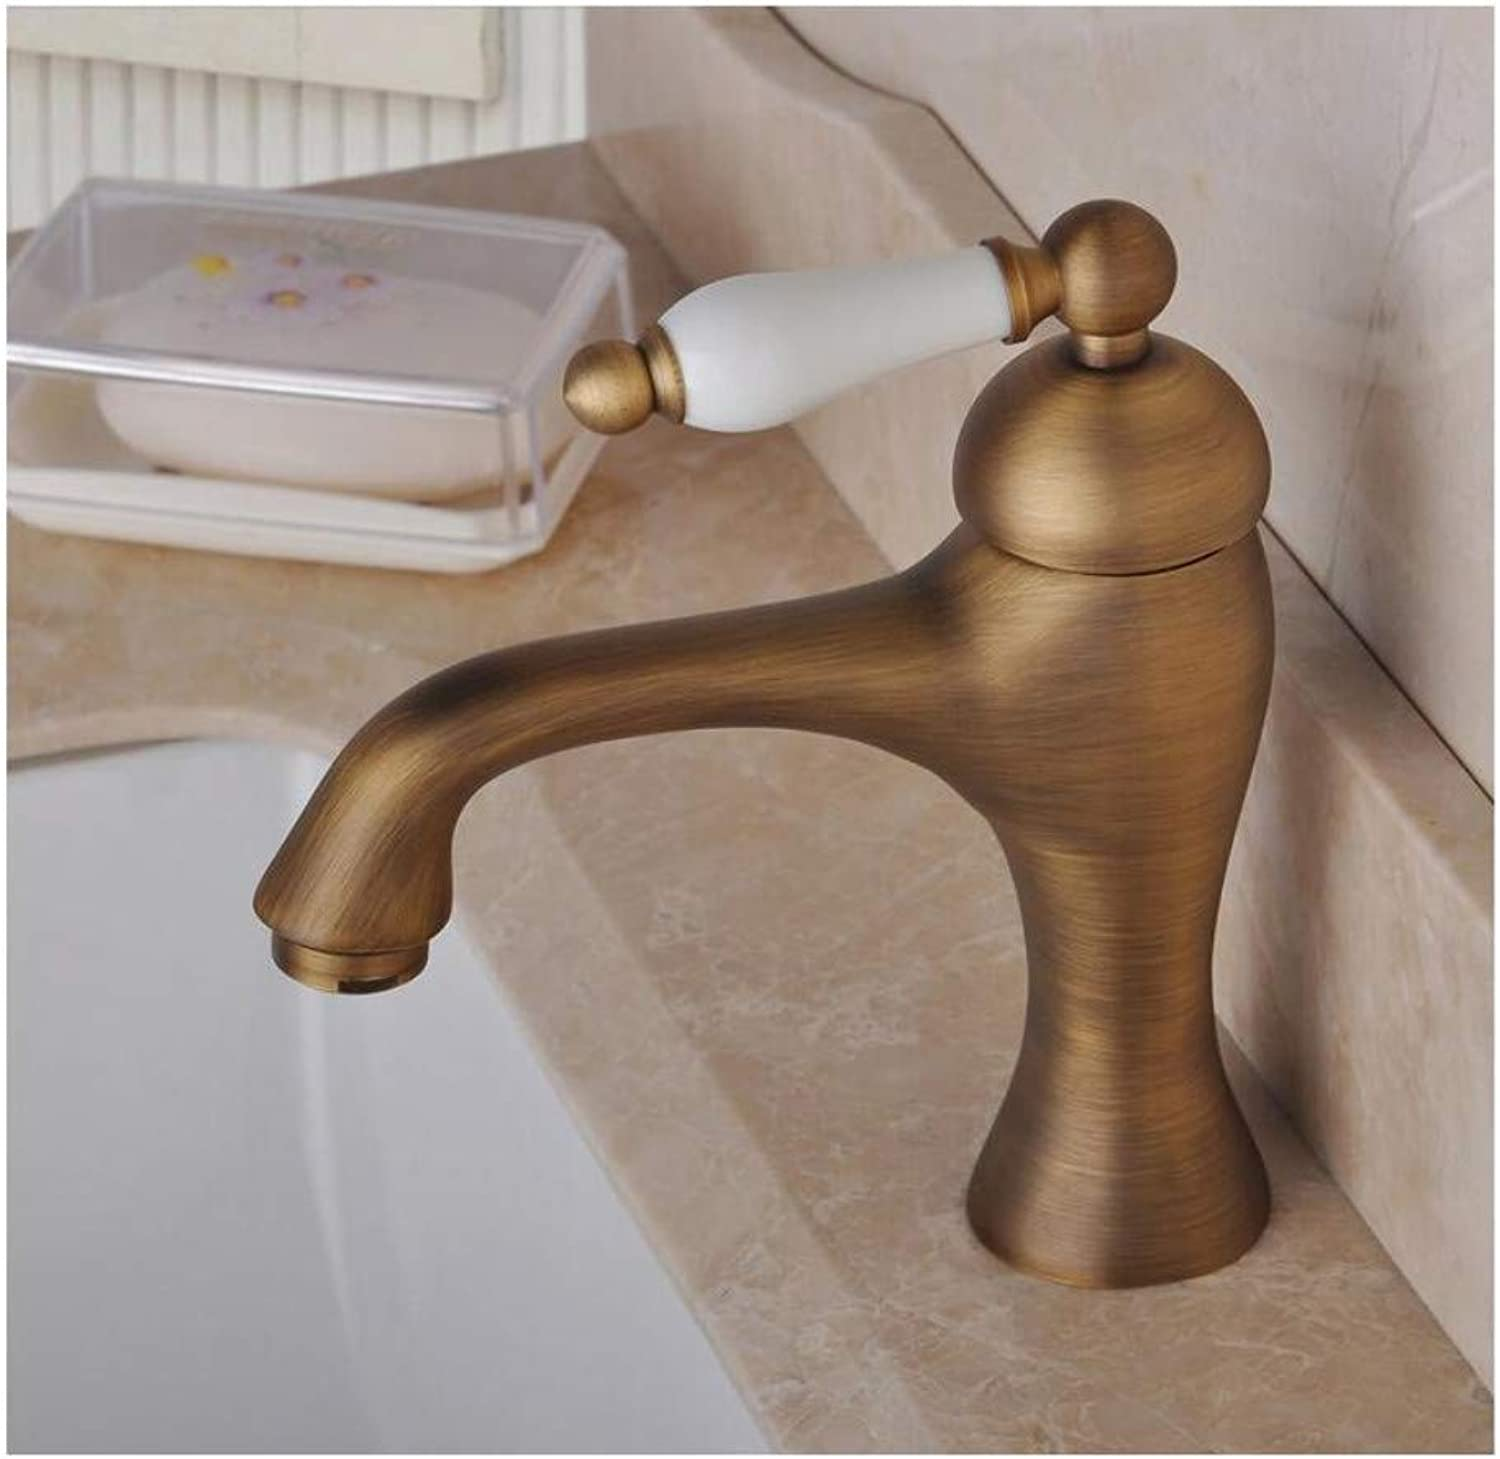 Chrome-Plated Adjustable Temperature-Sensitive Led Faucethandle Antique Brass Bathroom Sink Basin Mixer Tap